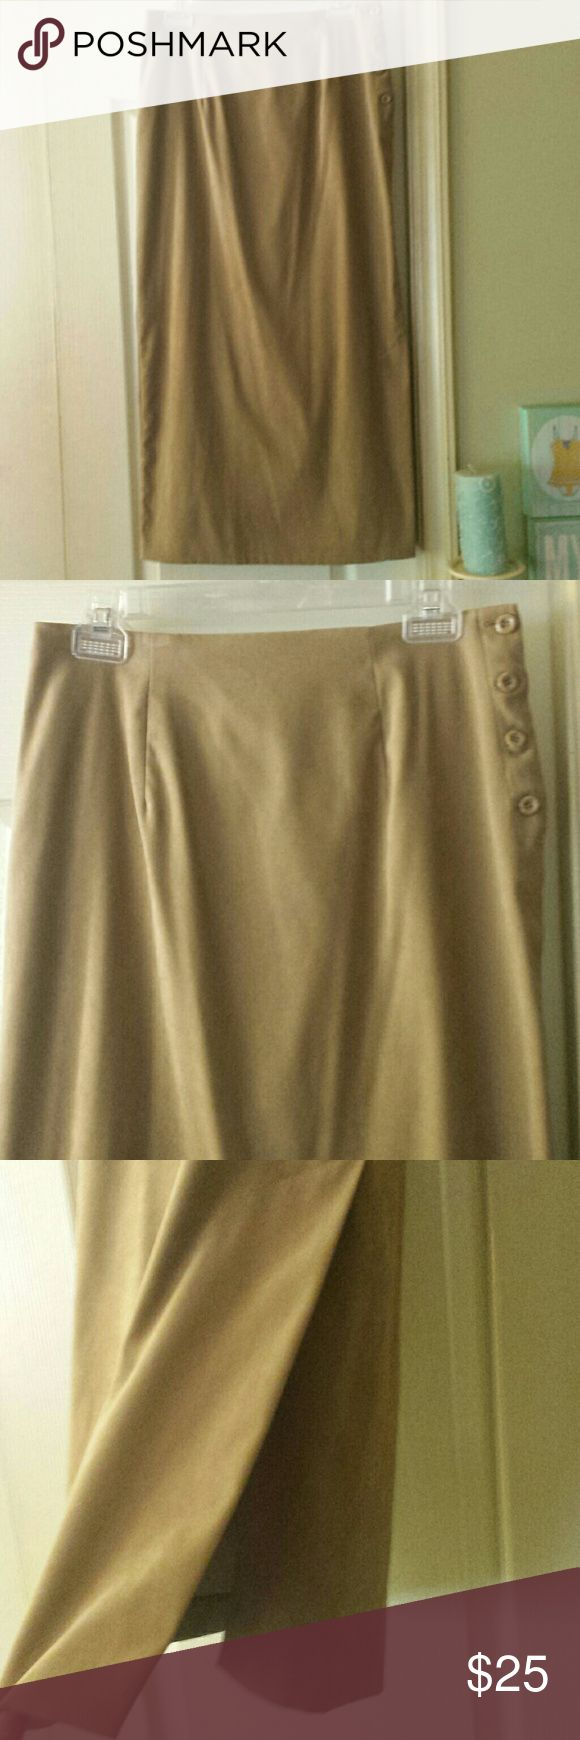 Studio C Tan / Camel Maxi Skirt. Size 12. Very pretty camel color / tan maxi skirt by Studio C. No stains or holes. Buttons on side and has long slit on side. The material is super soft! You can see it best in pic 6. Pic 7 shows material content. Size 12. Very good used condition. Looks awesome with boots! Only worn a couple of times. Size 12. Studio C Skirts Maxi